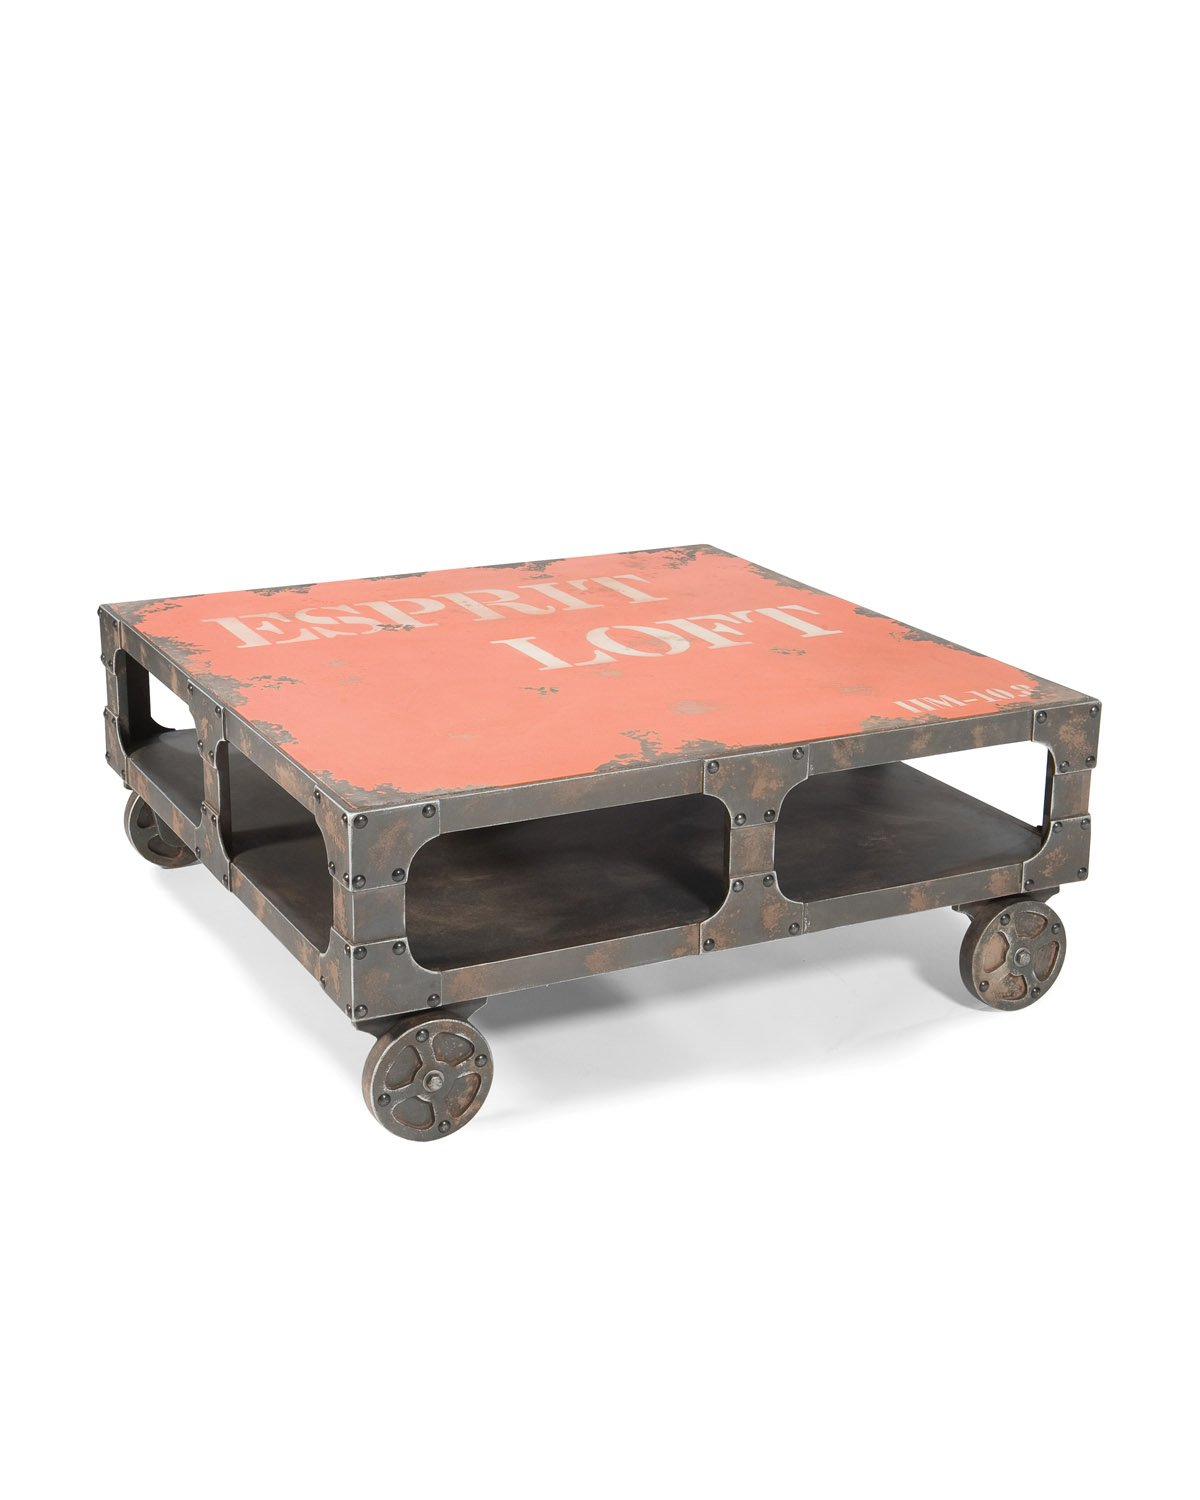 Rustic Coffee Table with Wheels http://www.pic2fly.com/Rustic+Coffee ...